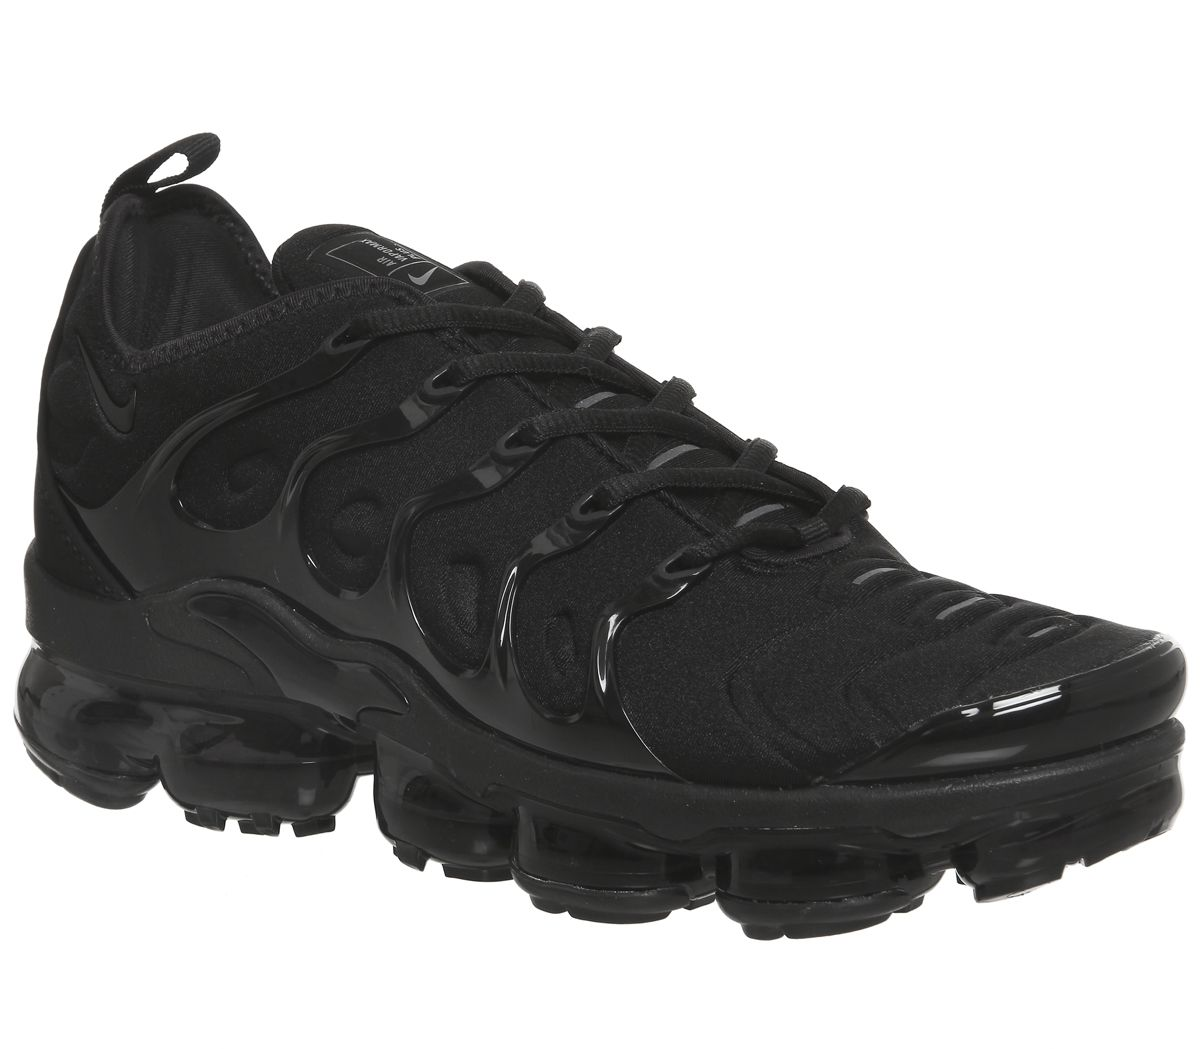 big sale 8663b 687f3 Nike Vapormax Air Vapormax Plus Black Black Dark Grey - Hers ...